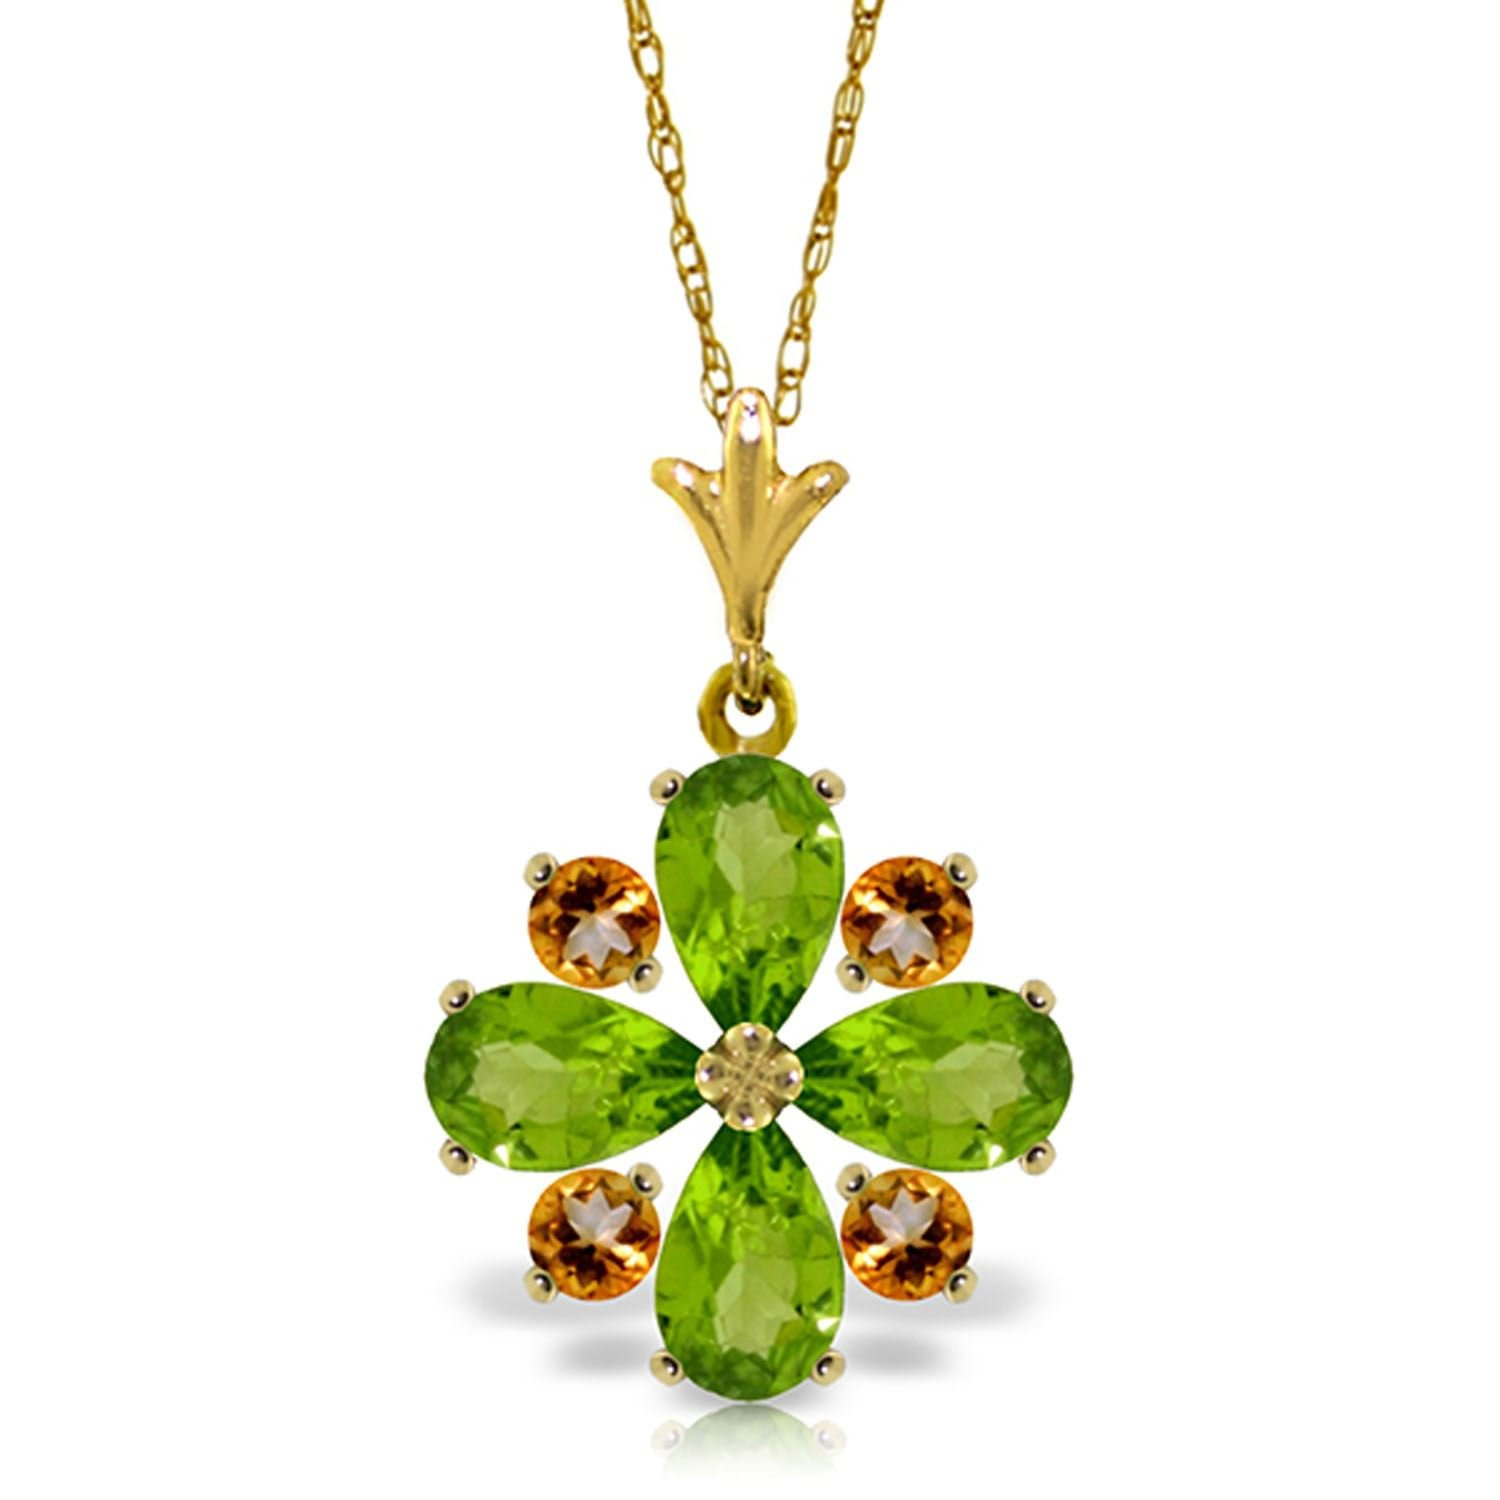 ALARRI 2.43 Carat 14K Solid Gold Amethyst Of Love Peridot Citrine Necklace with 20 Inch Chain Length